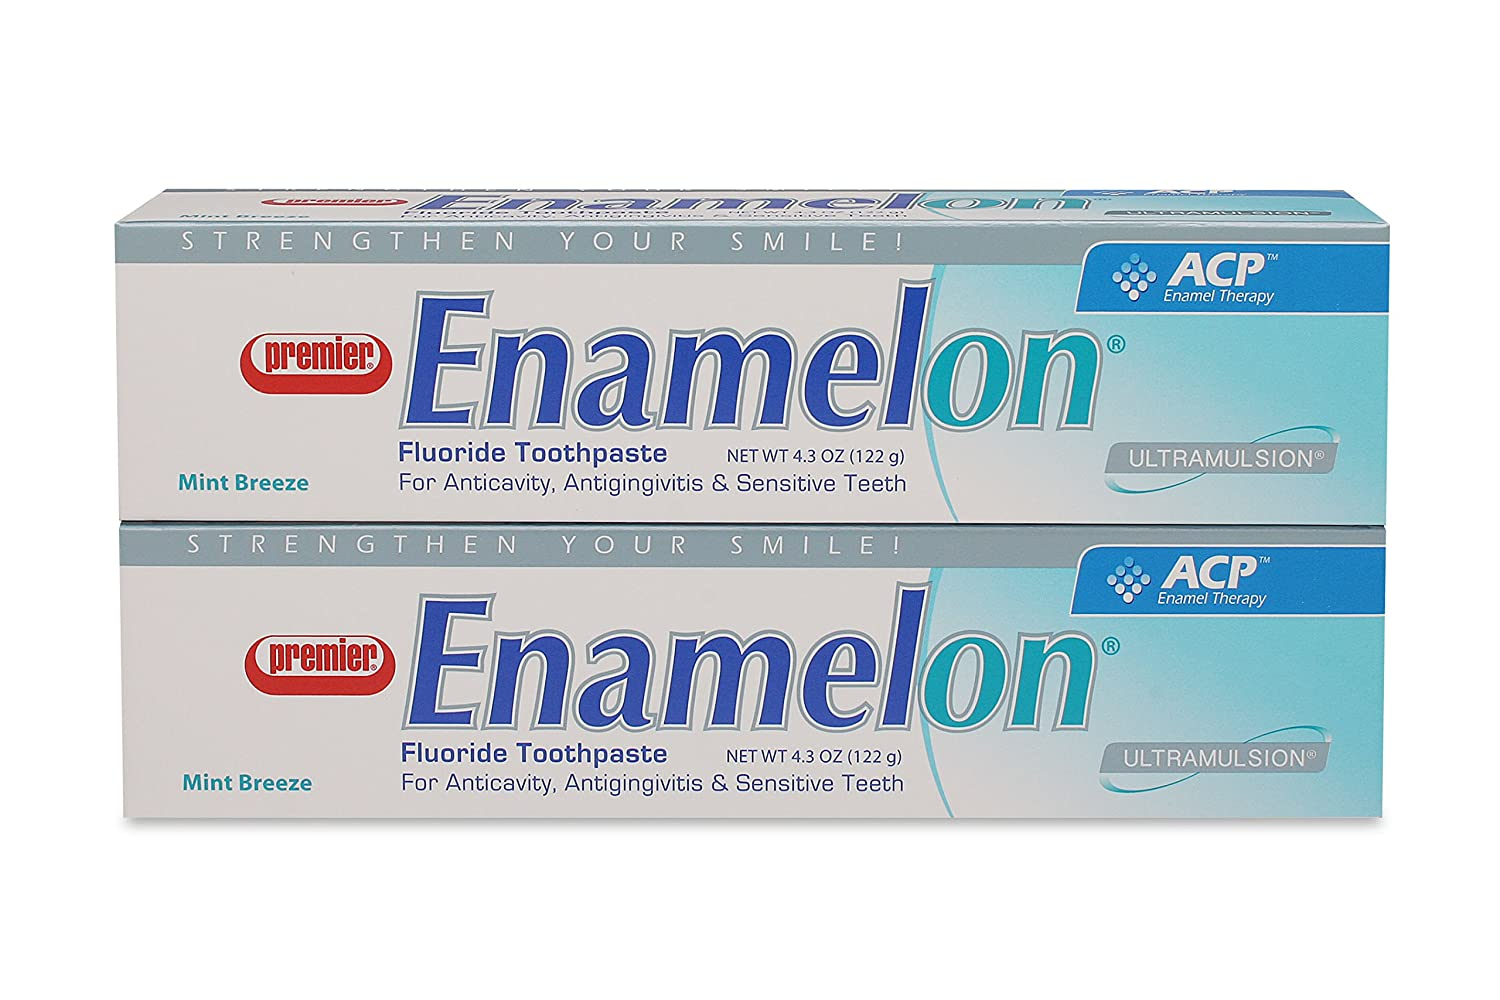 Premier 9007270 Enamelon Toothpaste Mint Breeze, 122 g, White (Pack of 2)